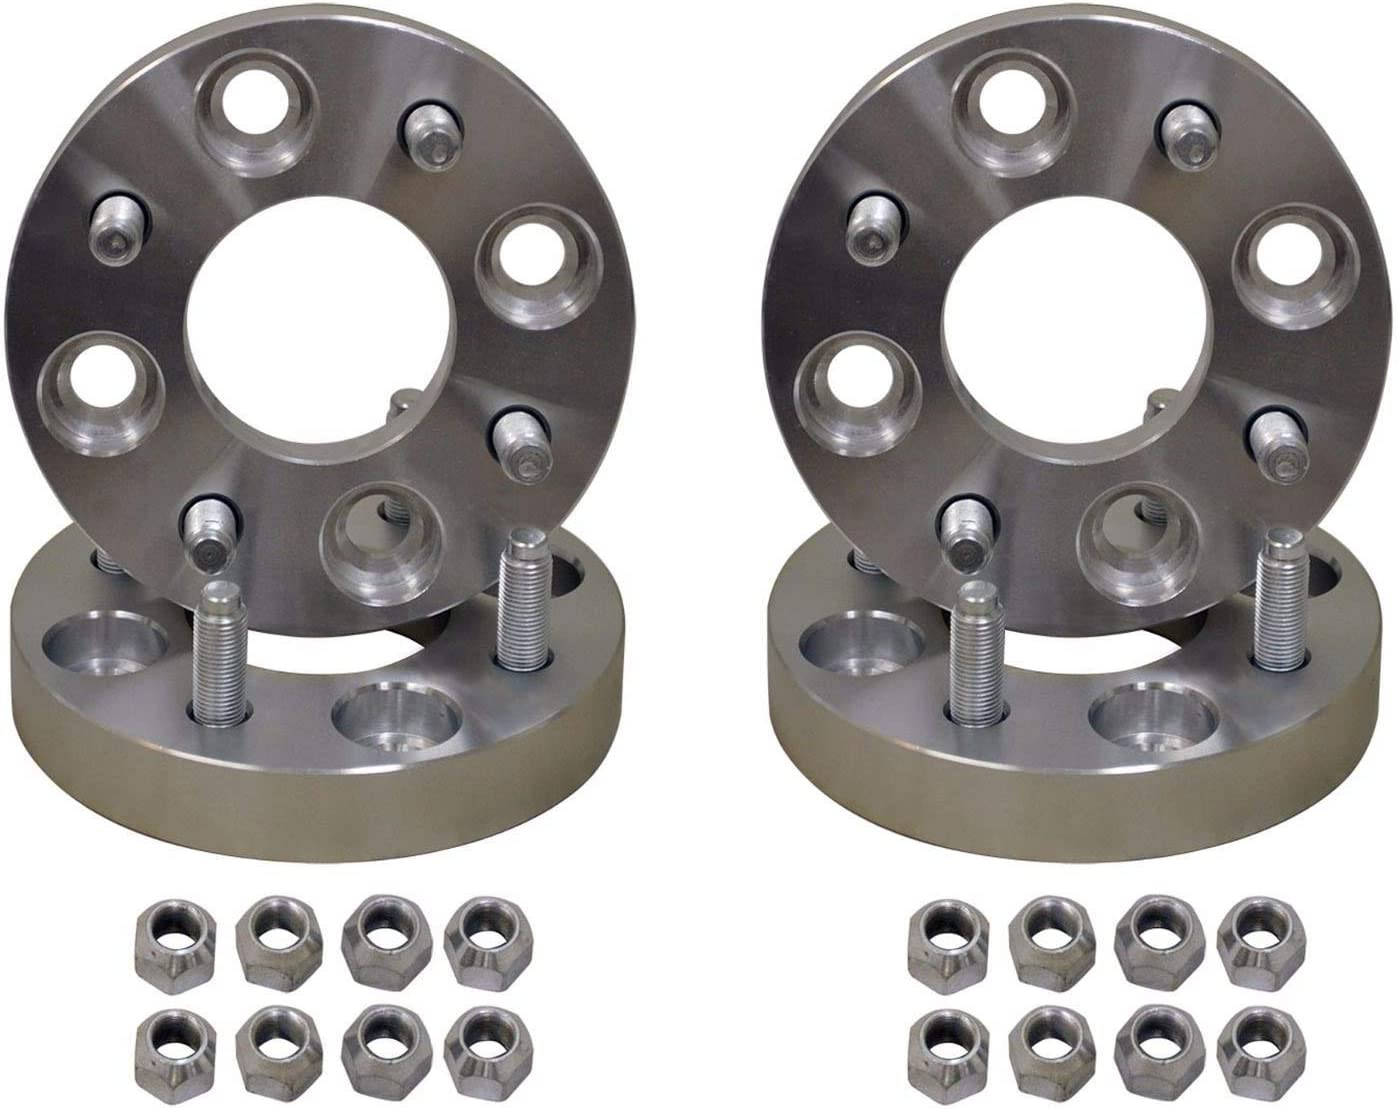 4 Adapters SuperATV 1.5 Aluminum Wheel Spacer Adapter for Yamaha 4//110 to 4//156 Full Set